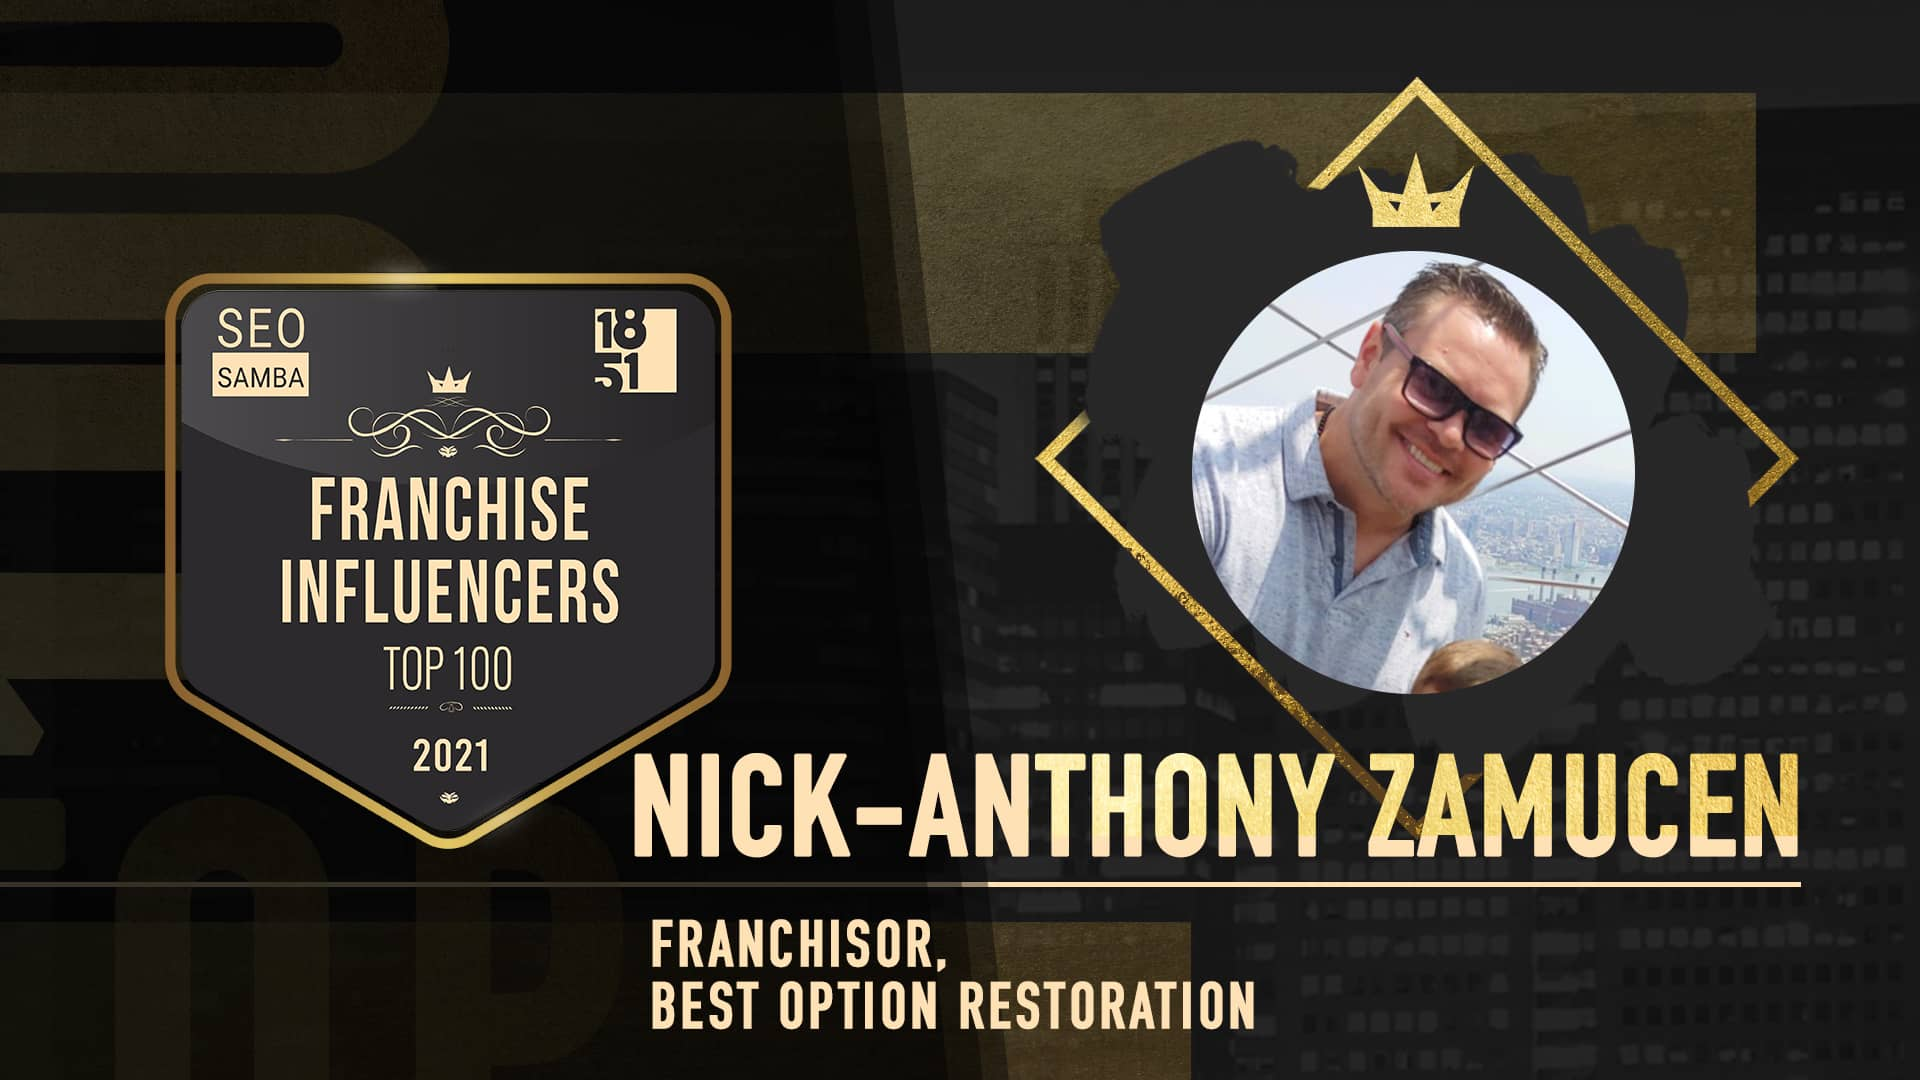 nick-anthony-zamucen-best-option-restoration